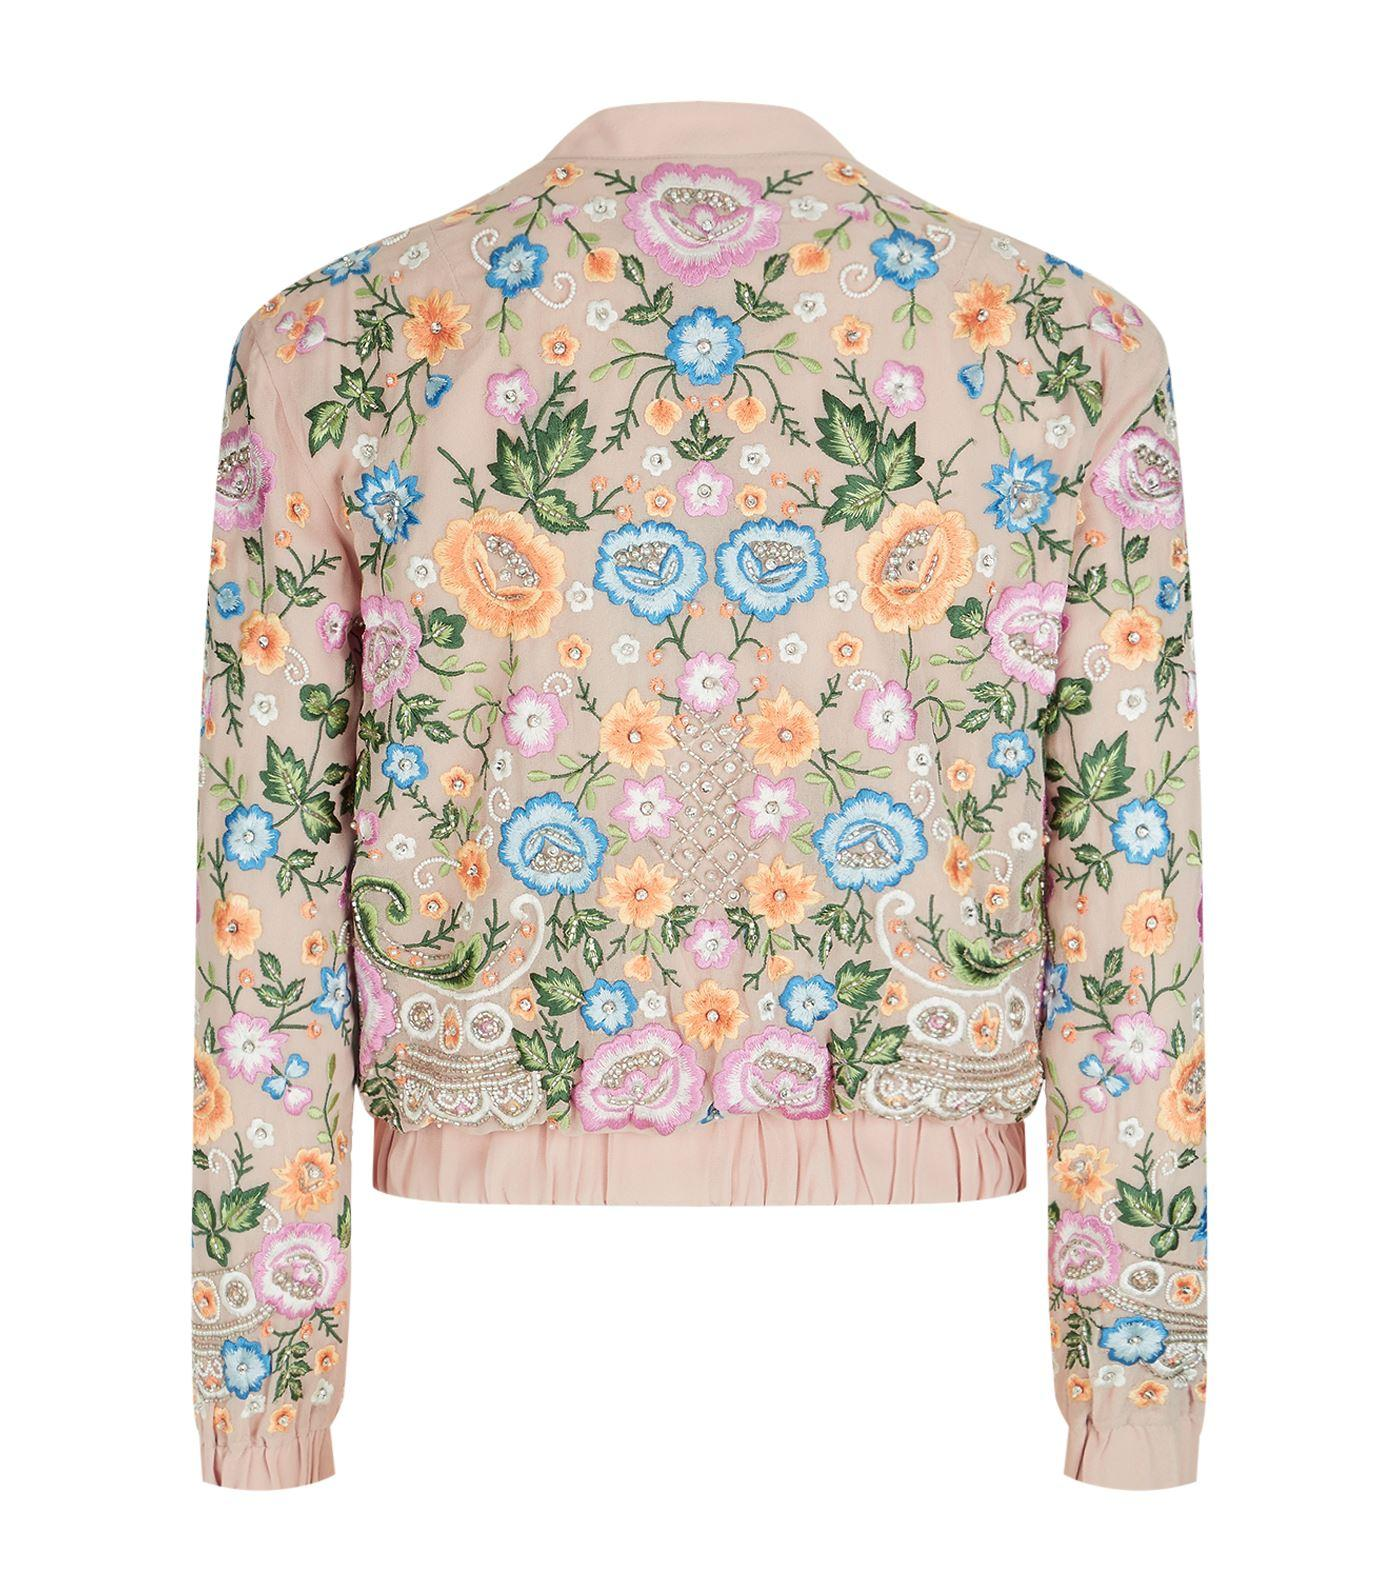 Needle thread floral embroidered bomber jacket in pink